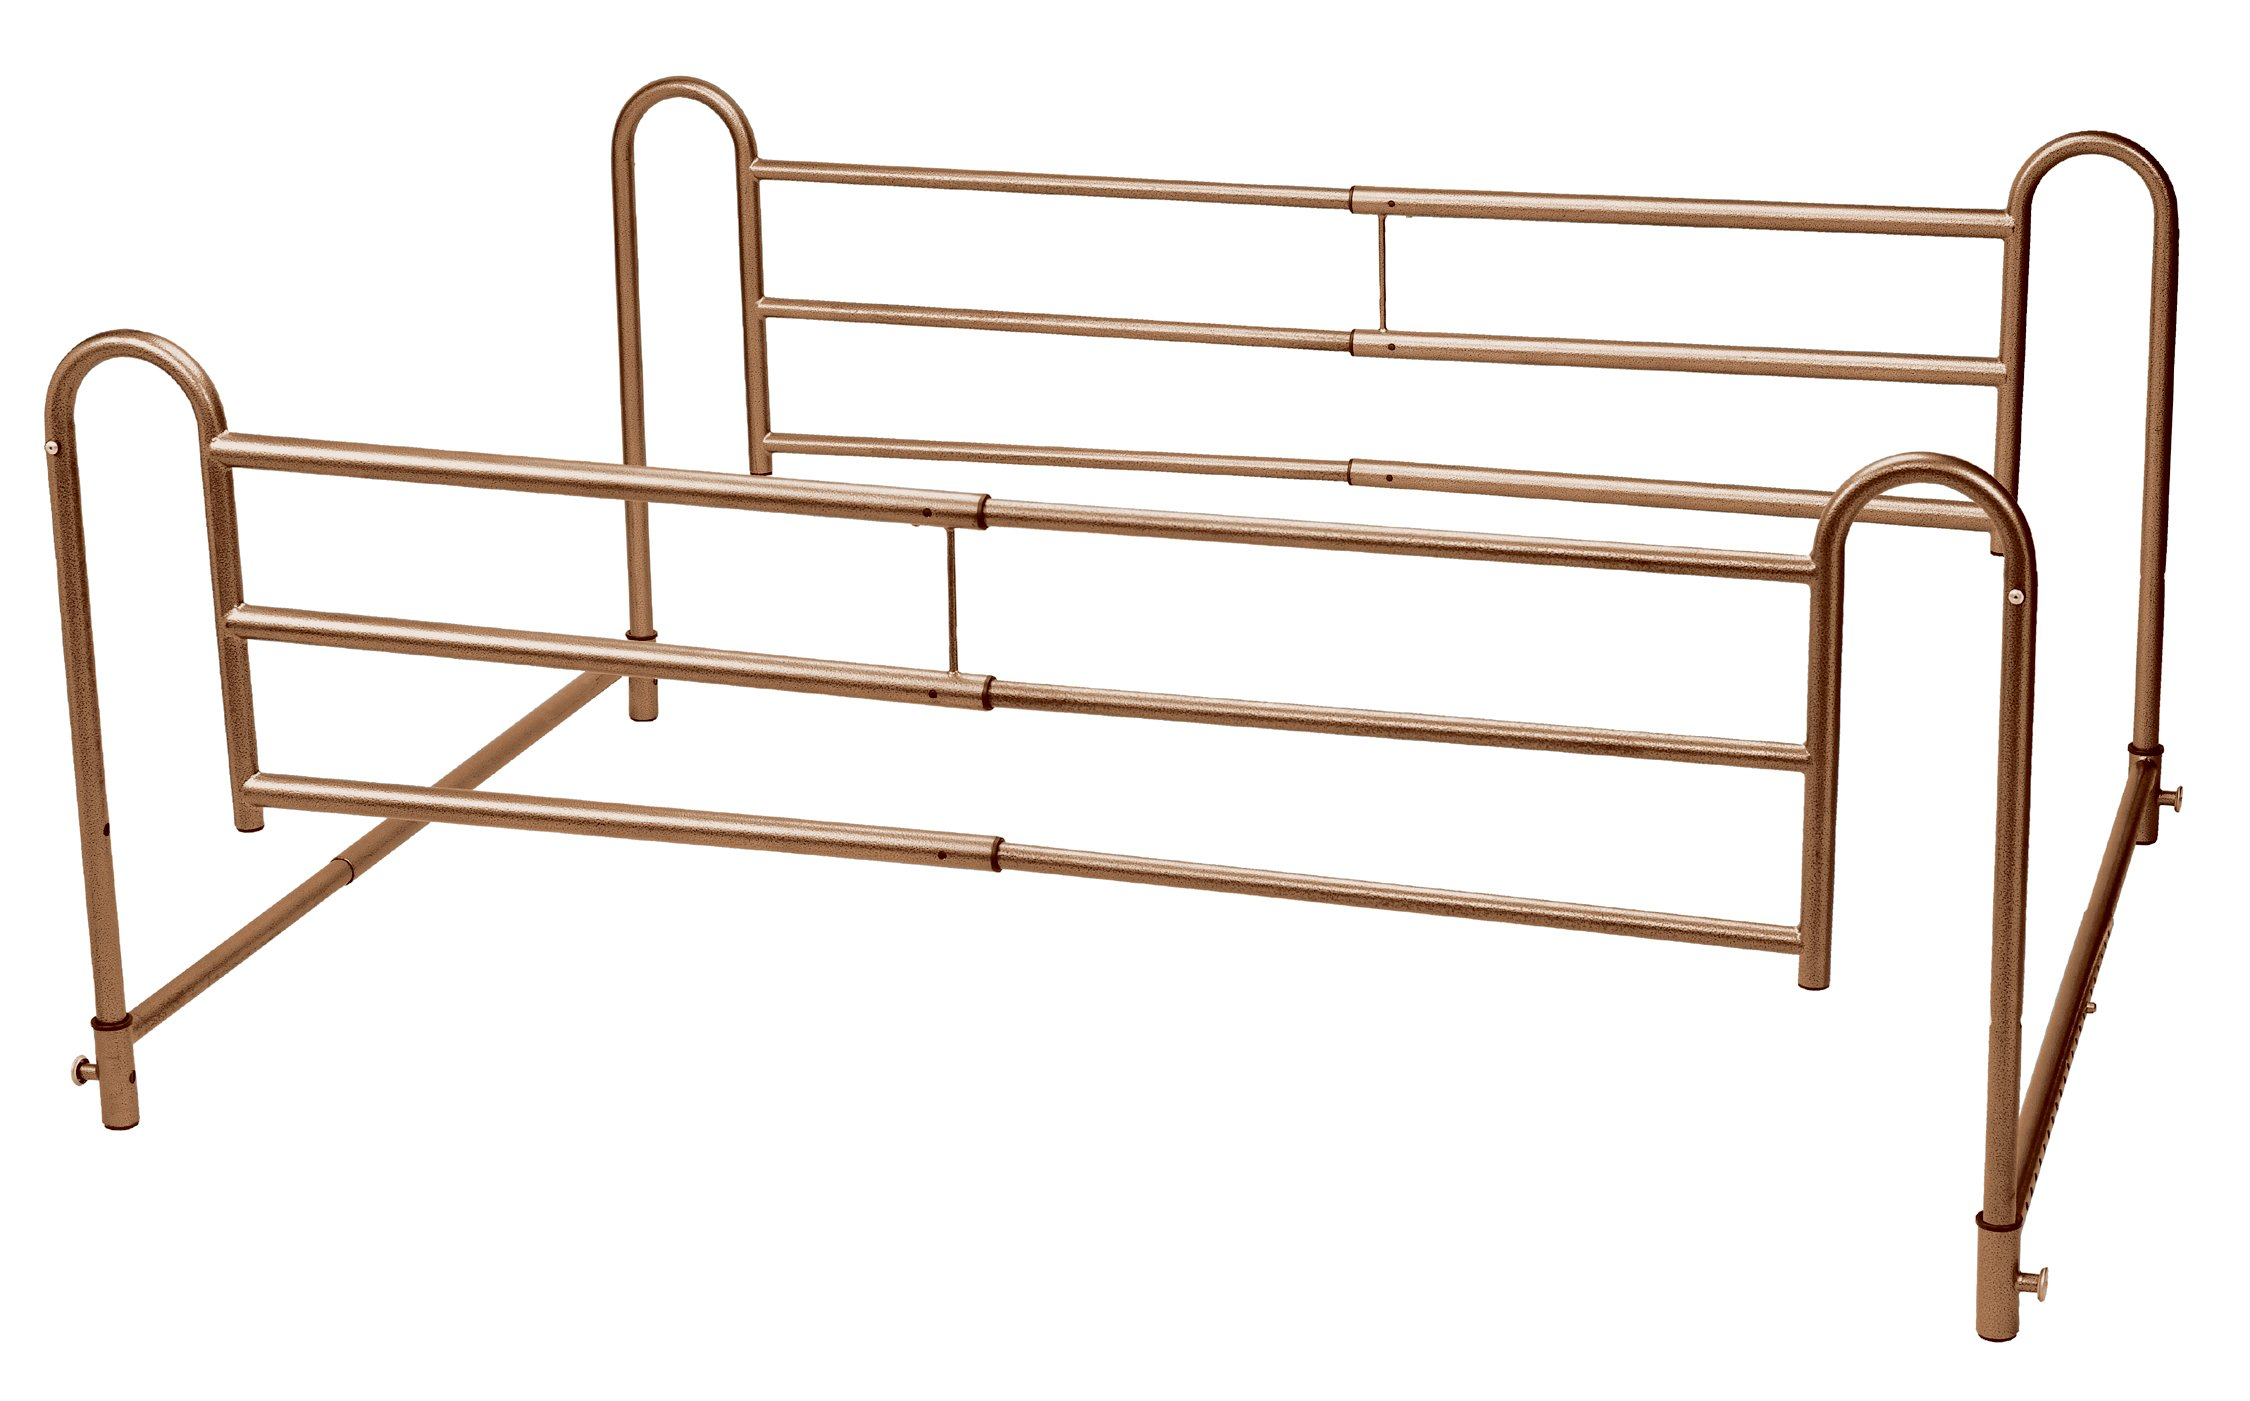 Drive Medical Home Bed Style Adjustable Length Bed Rails, Brown Vein by Drive Medical